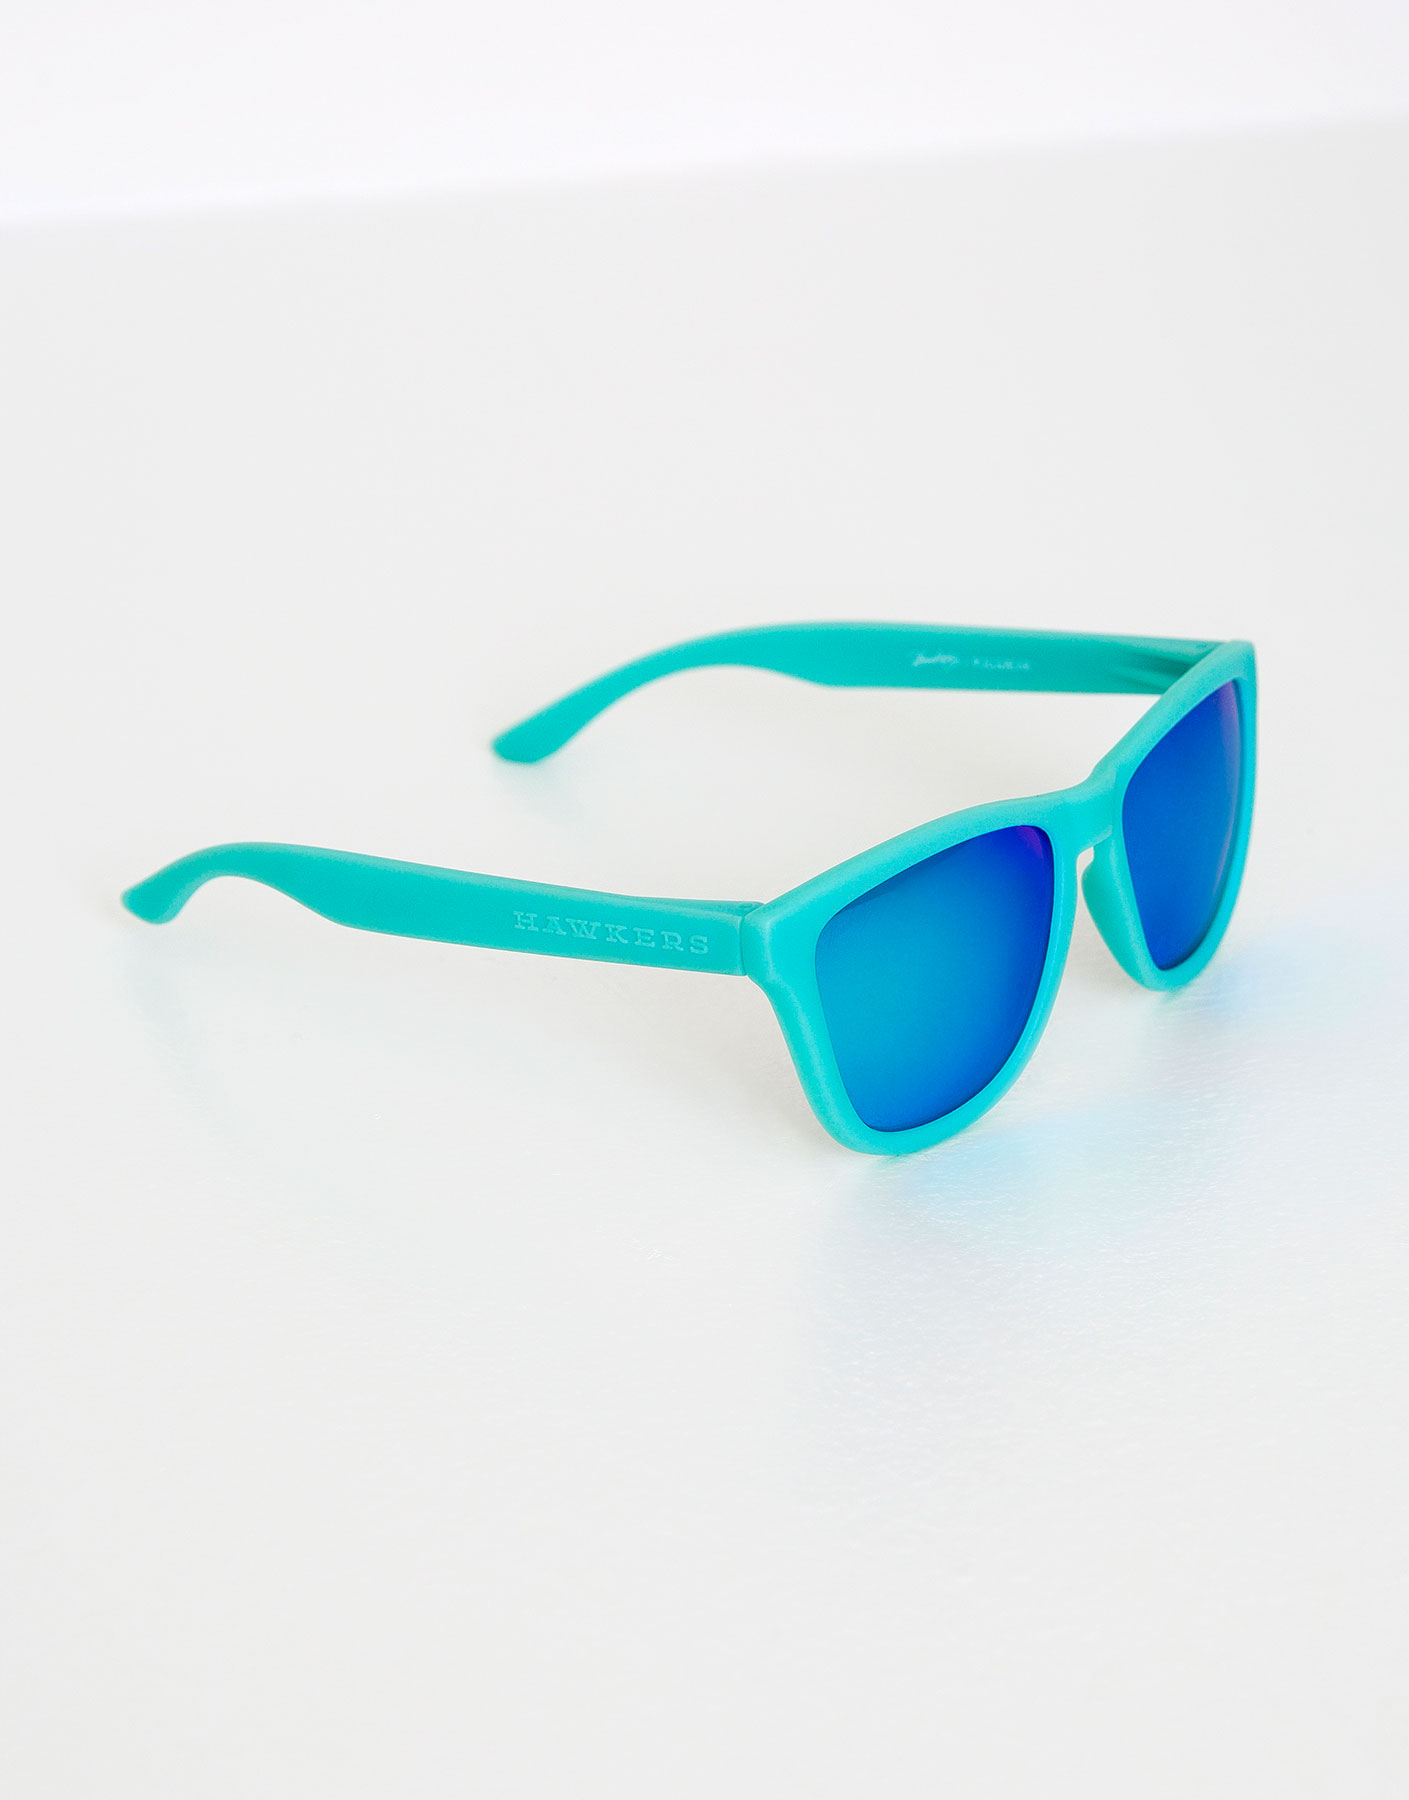 Occhiali da sole hawkers turquoise clear blue one